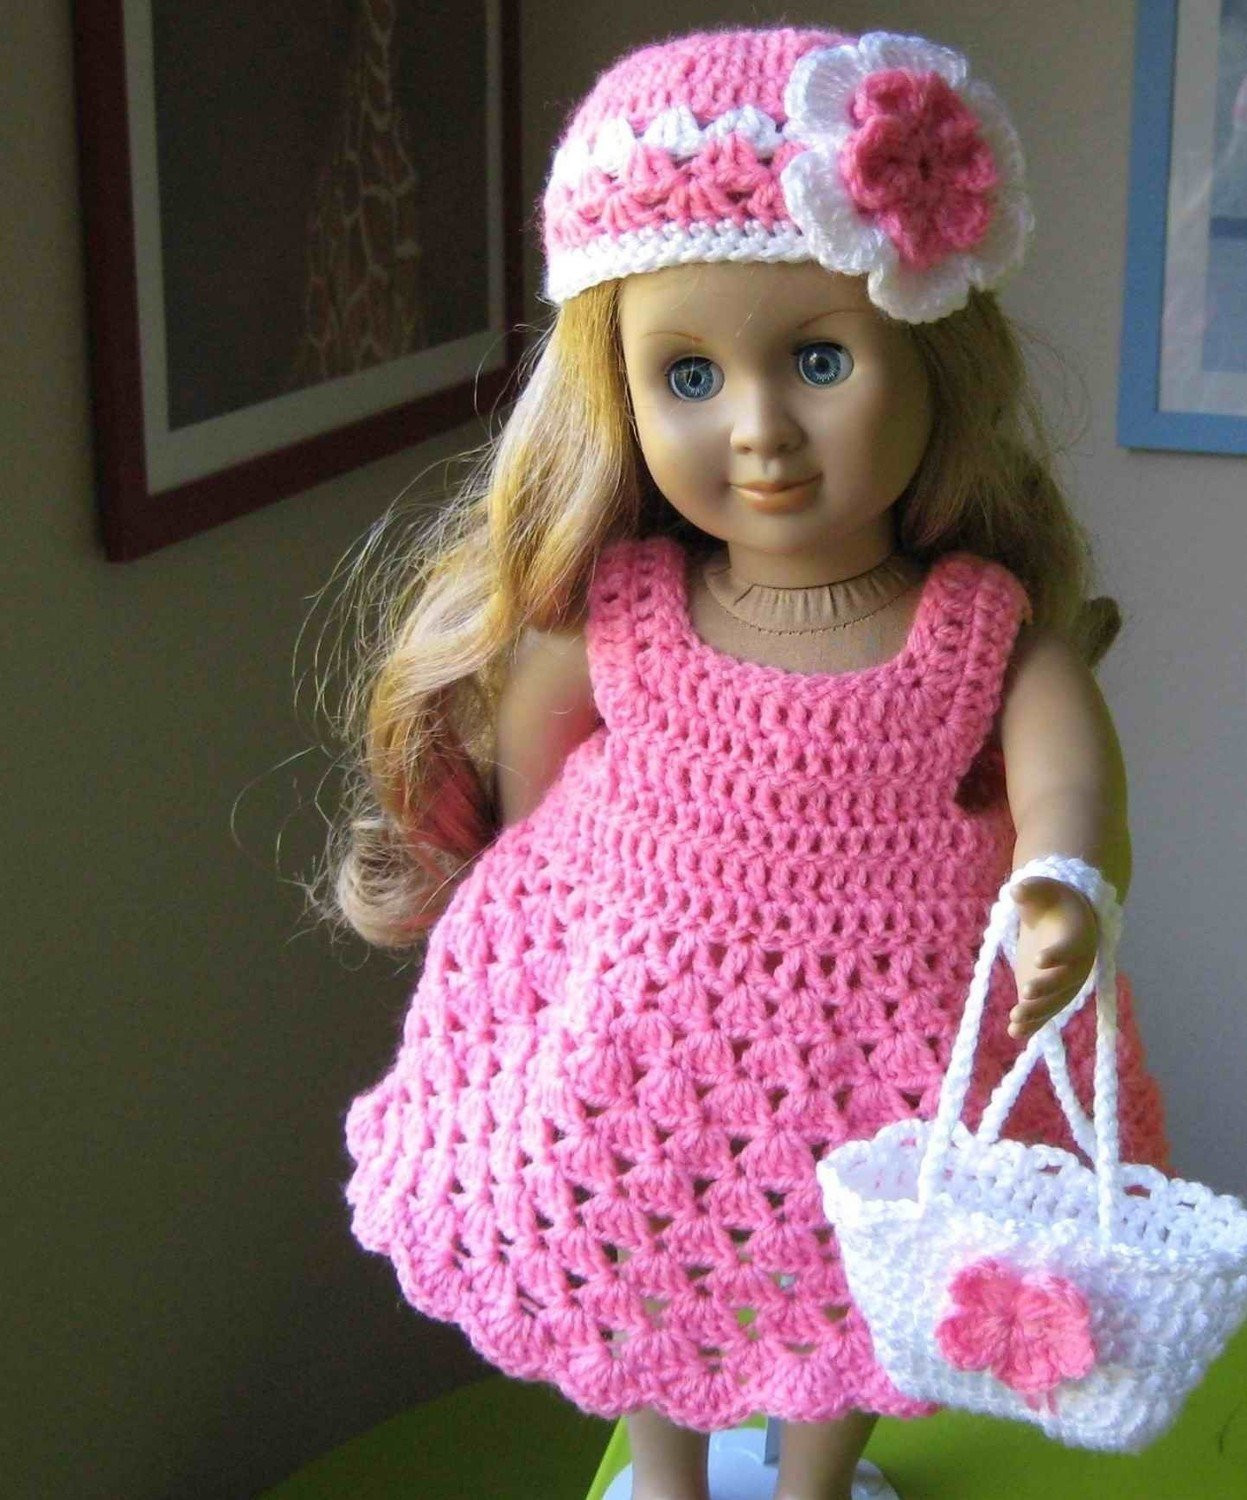 Awesome Doll Dress Parttern Crocheted Doll Dress for American Girl Free Crochet Dress Patterns Of Unique 43 Images Free Crochet Dress Patterns